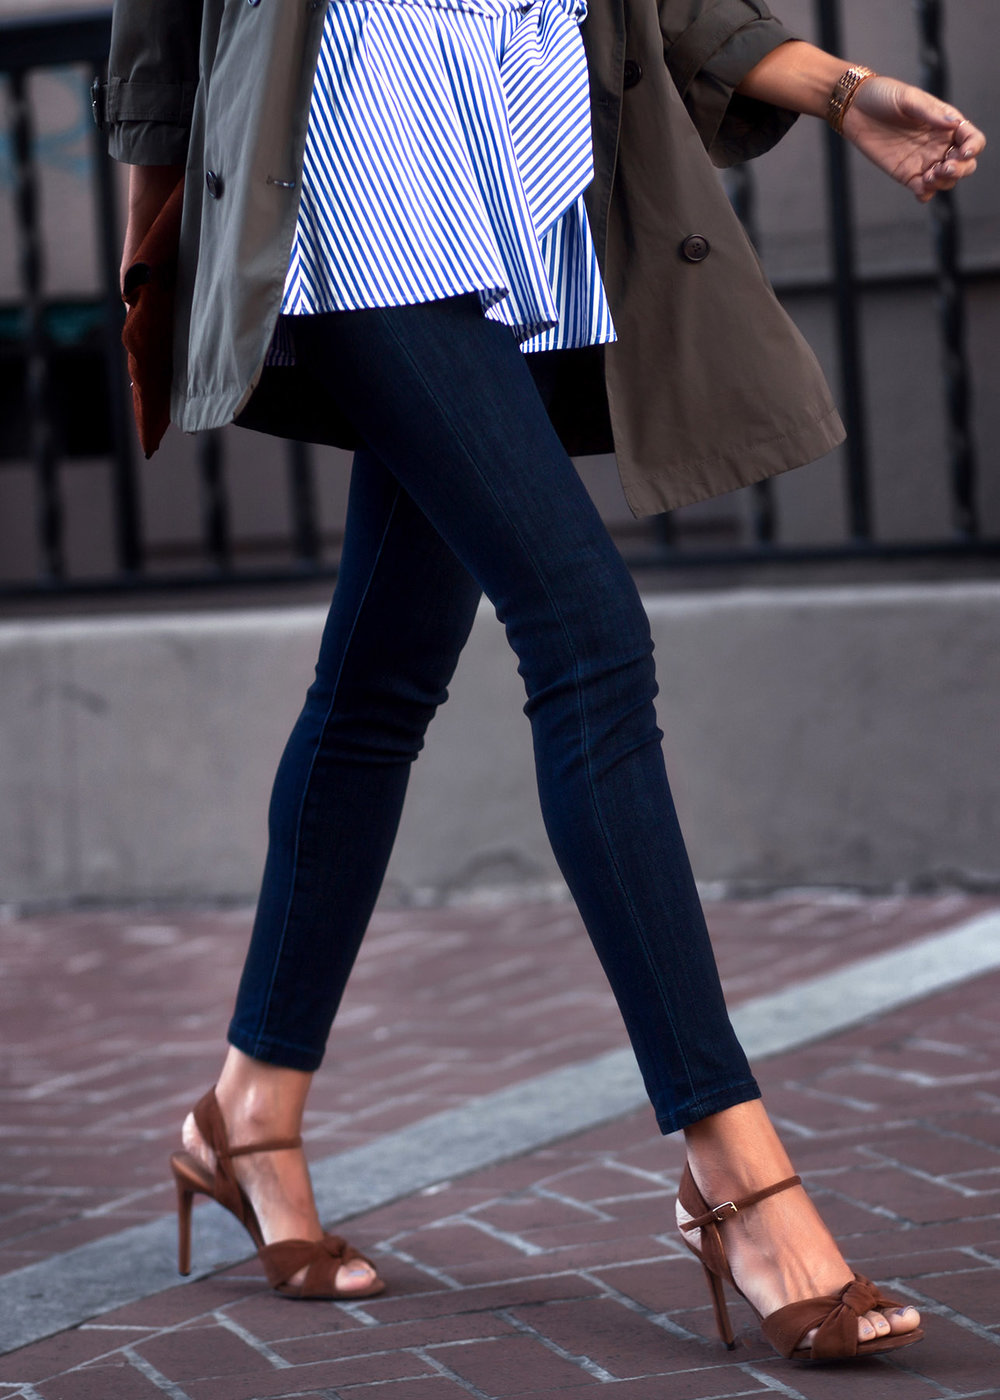 Banana_Republic_Denim_Suede_Sandals.jpg